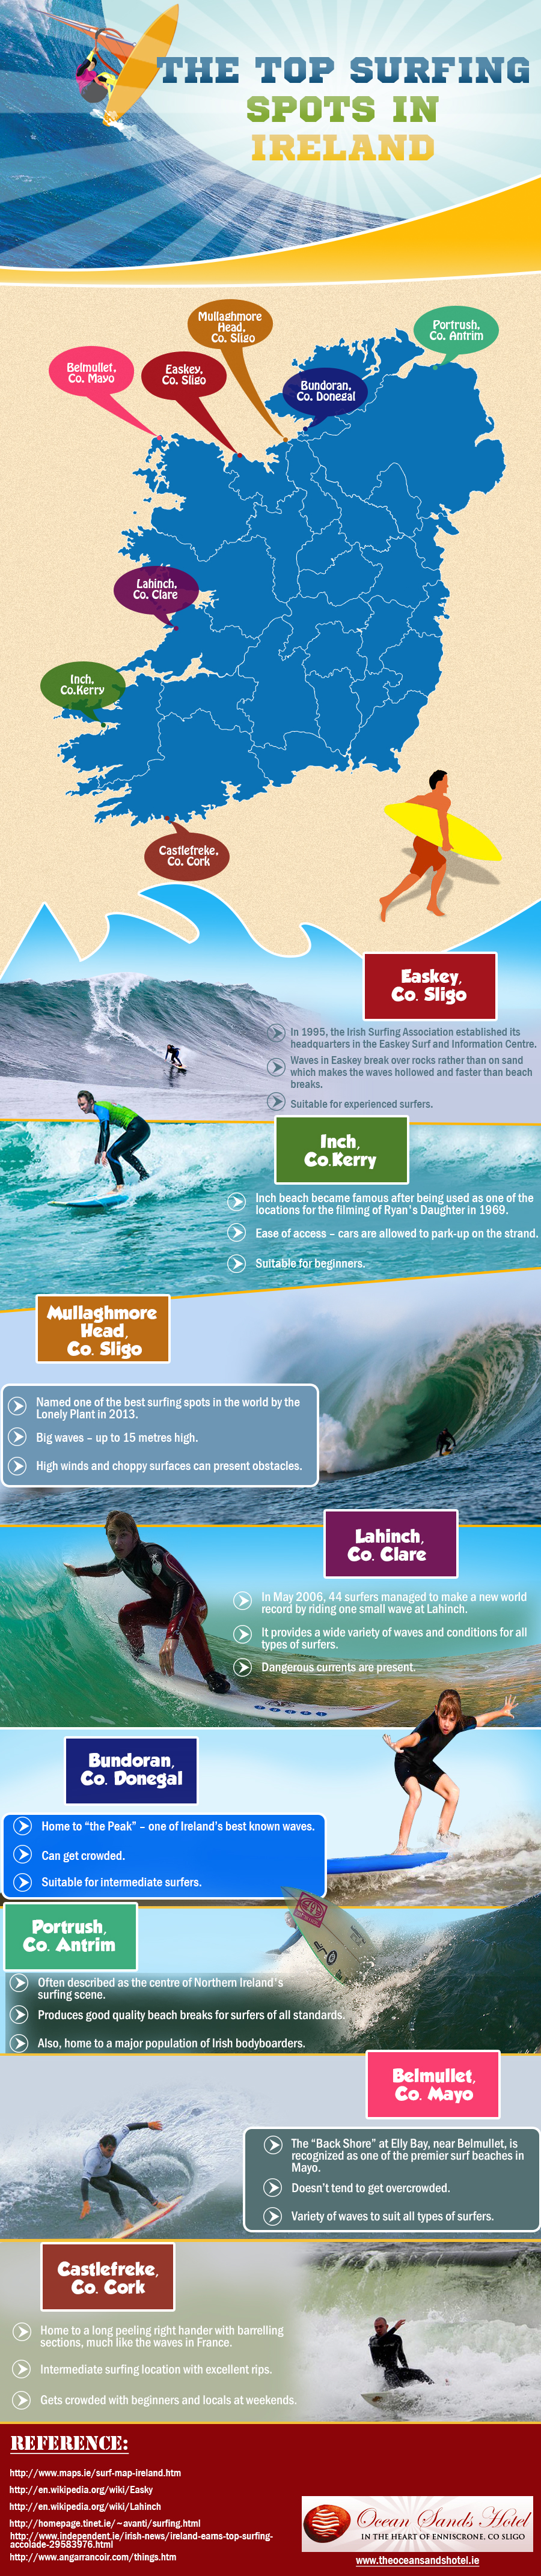 The-Top-Surfing-Spots-in-Ireland